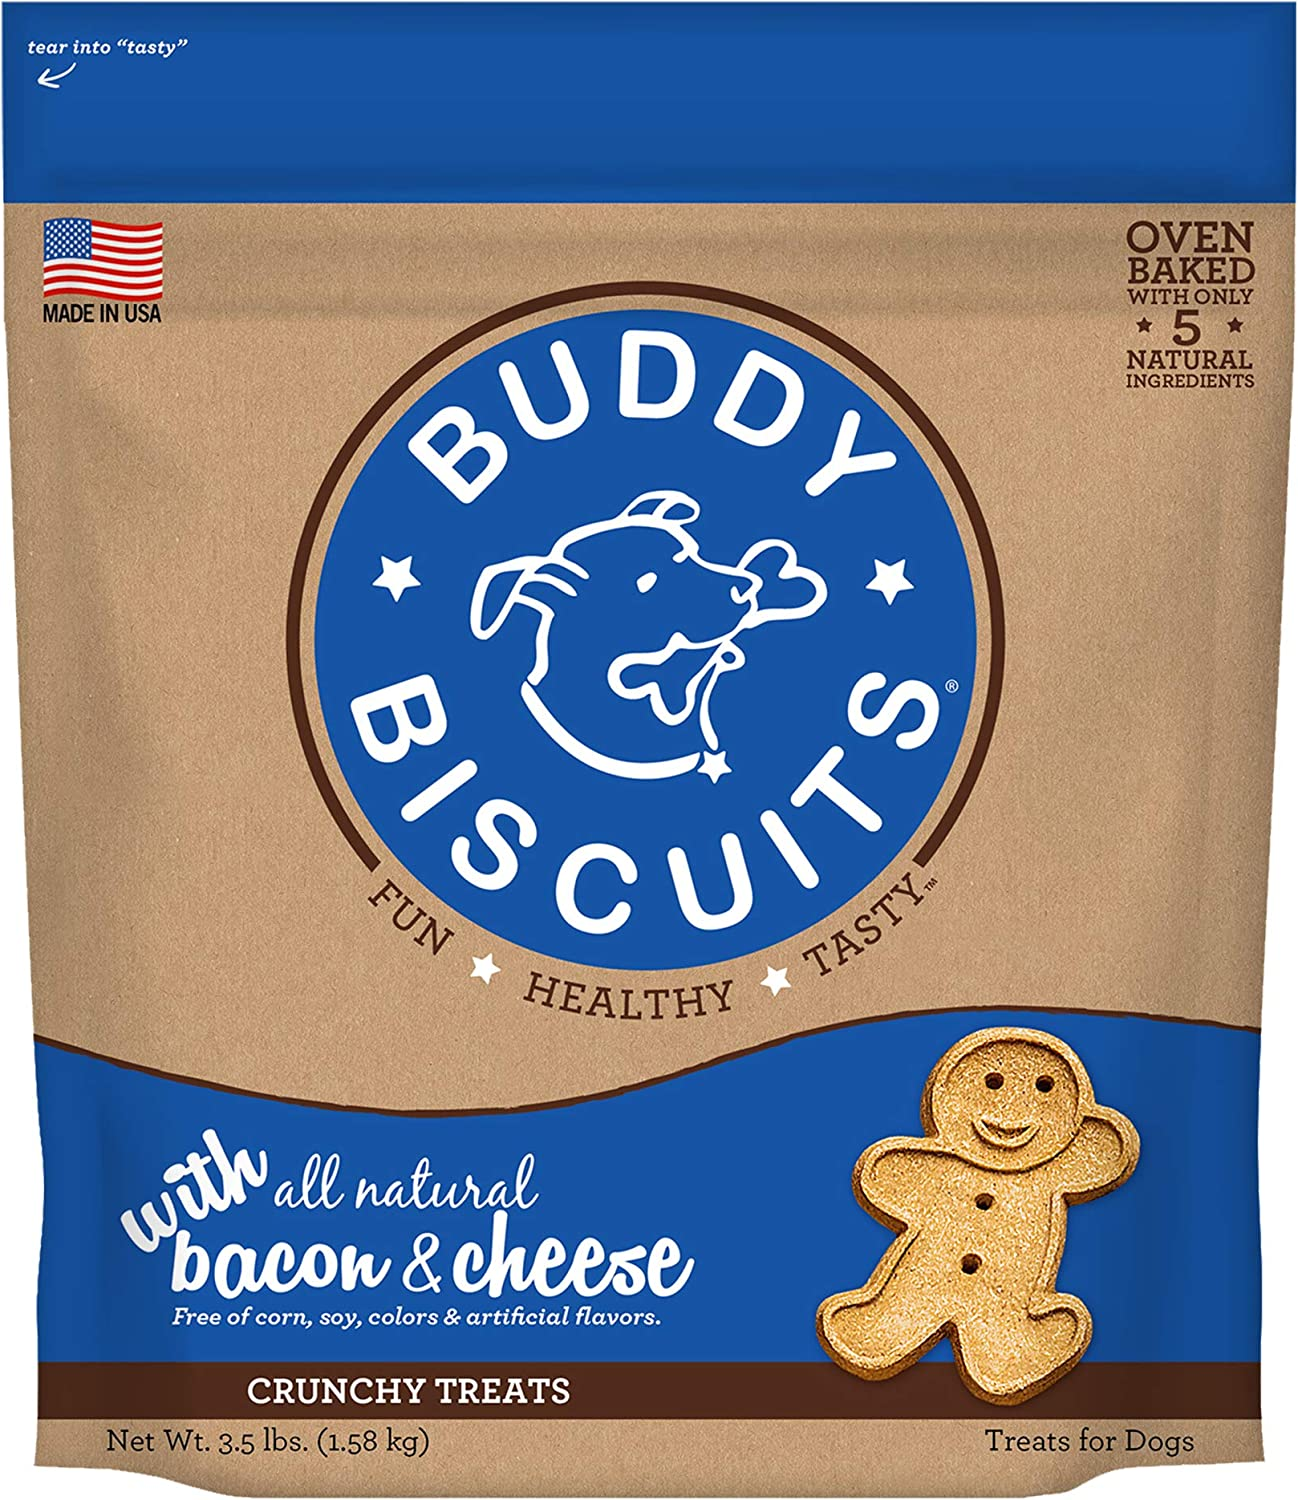 Buddy Biscuits Original Oven Baked Treats with Bacon & Cheese  3.5 Lb, 1 Piece